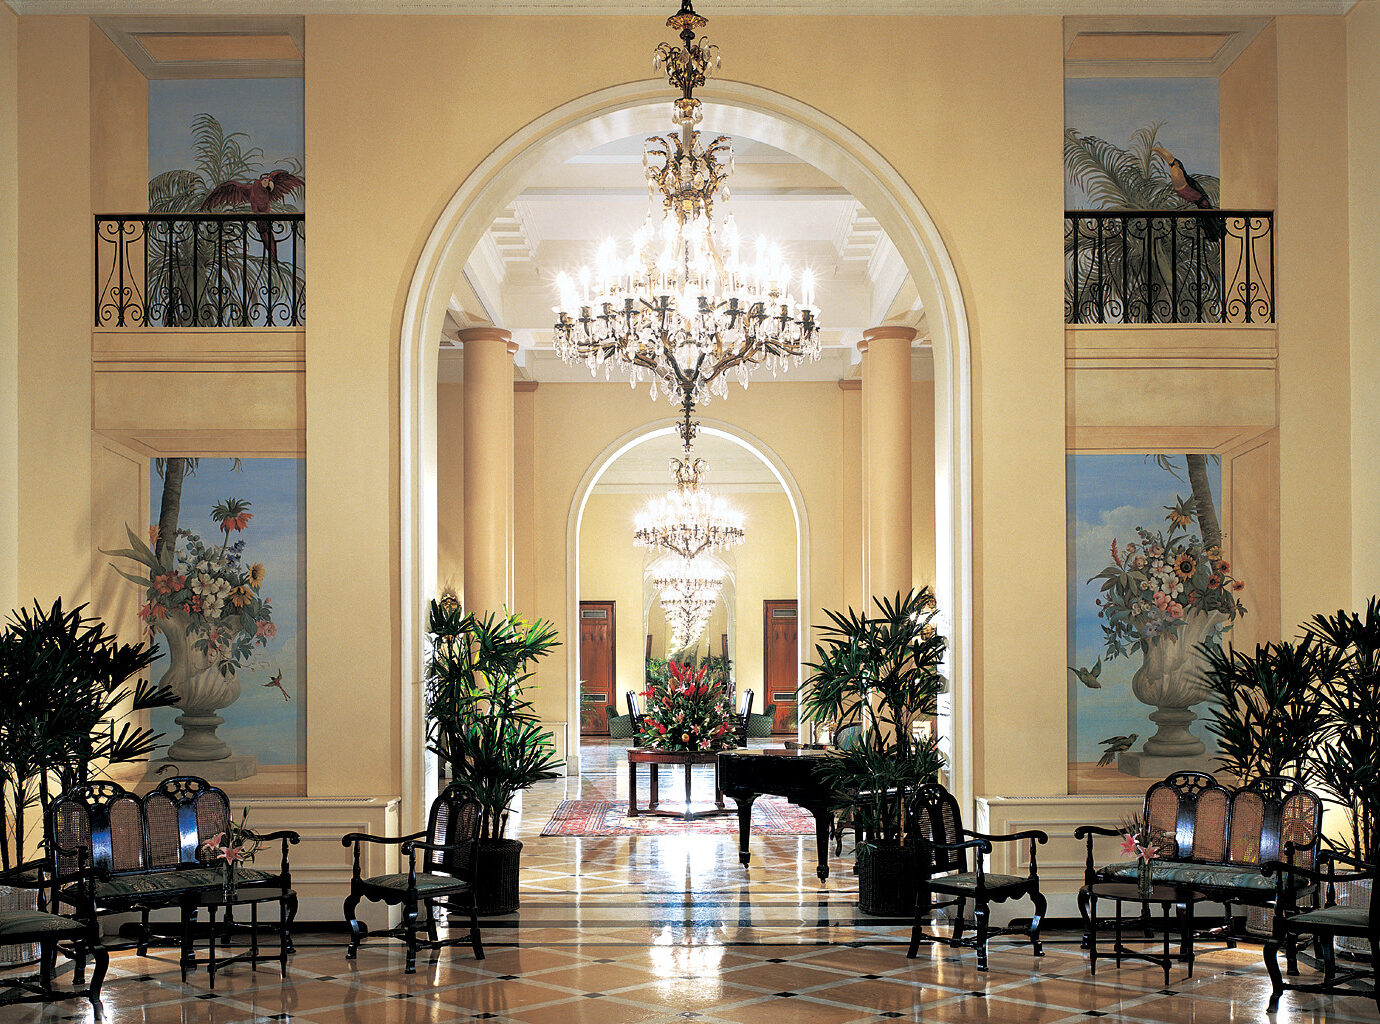 Lobby at Copacabana Palace, Rio